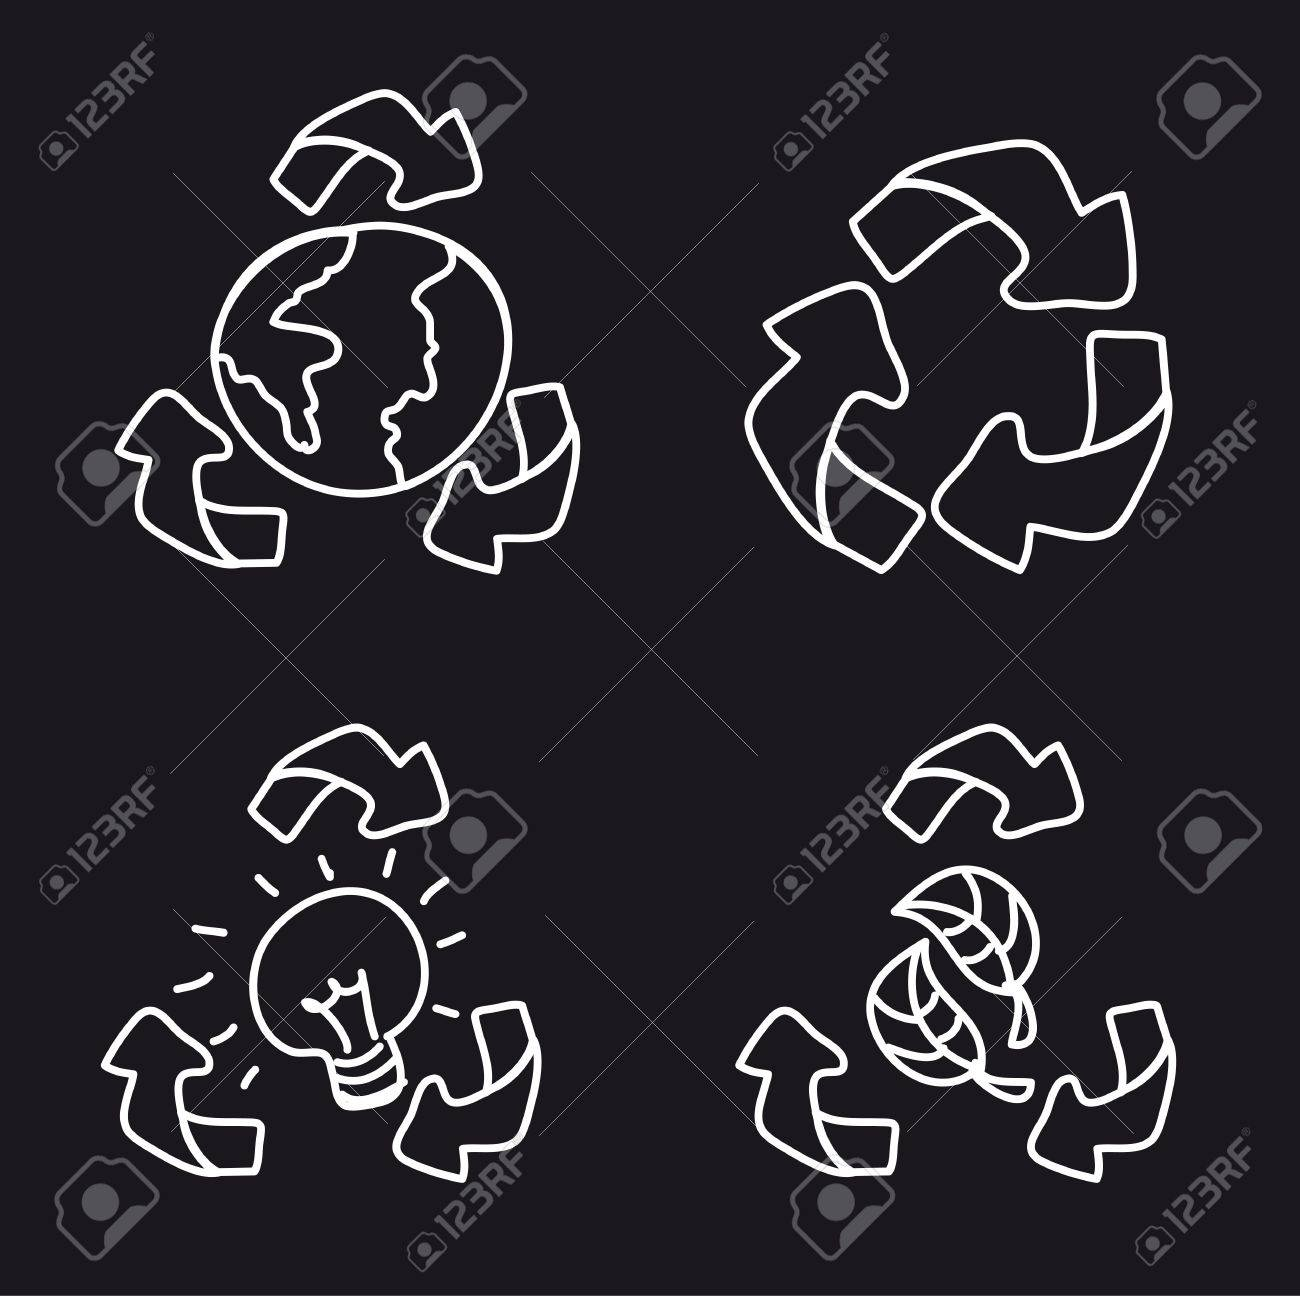 black and white recycle sign isolated. vector illustration Stock Vector - 13105831